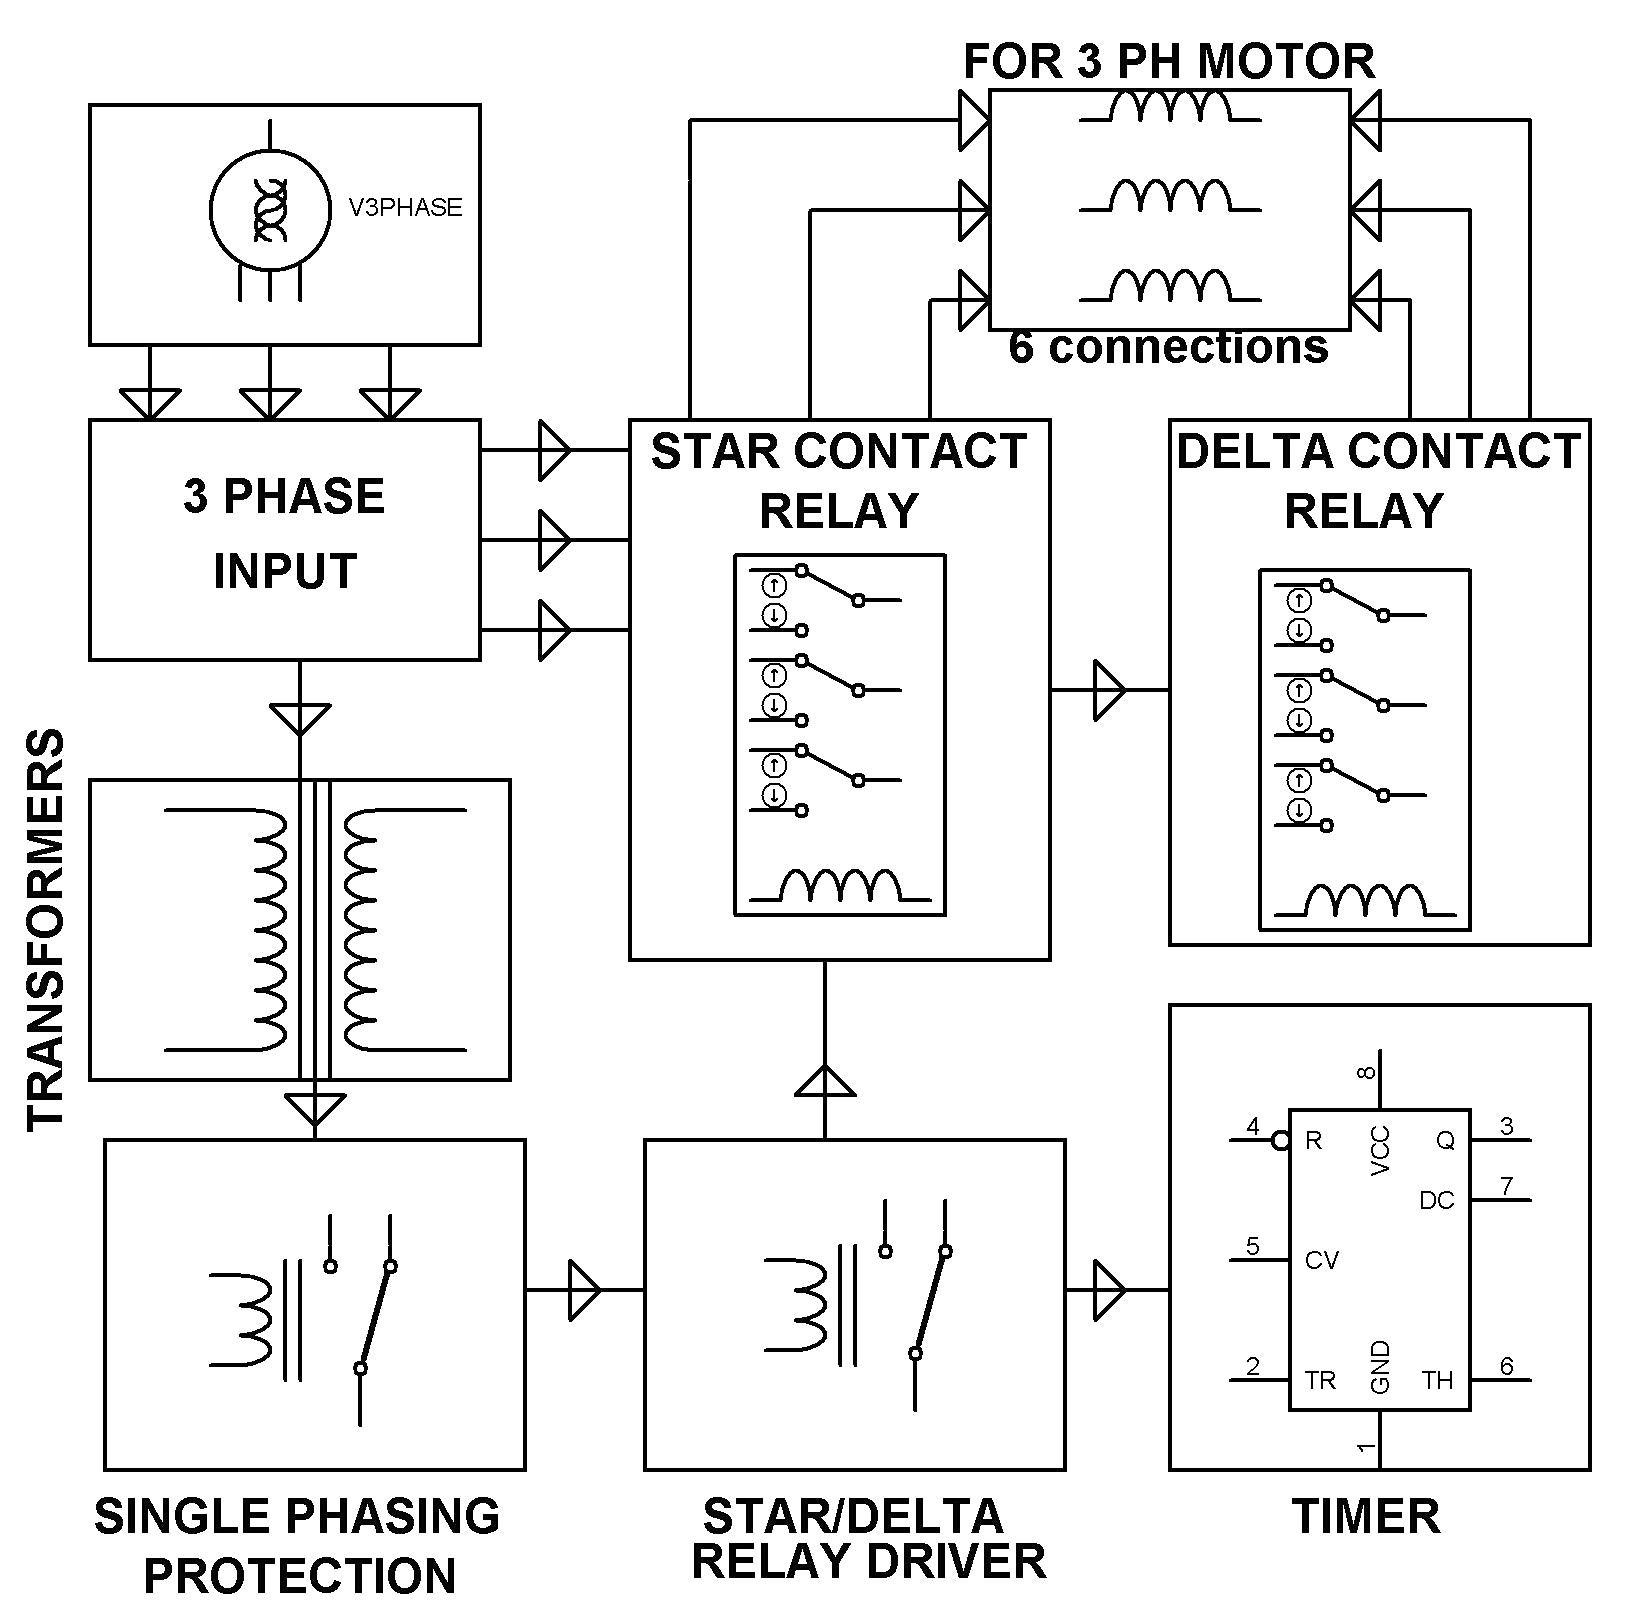 electrical engineering and projects electrical amps basic plc diagram basic plc wiring diagram [ 1651 x 1621 Pixel ]